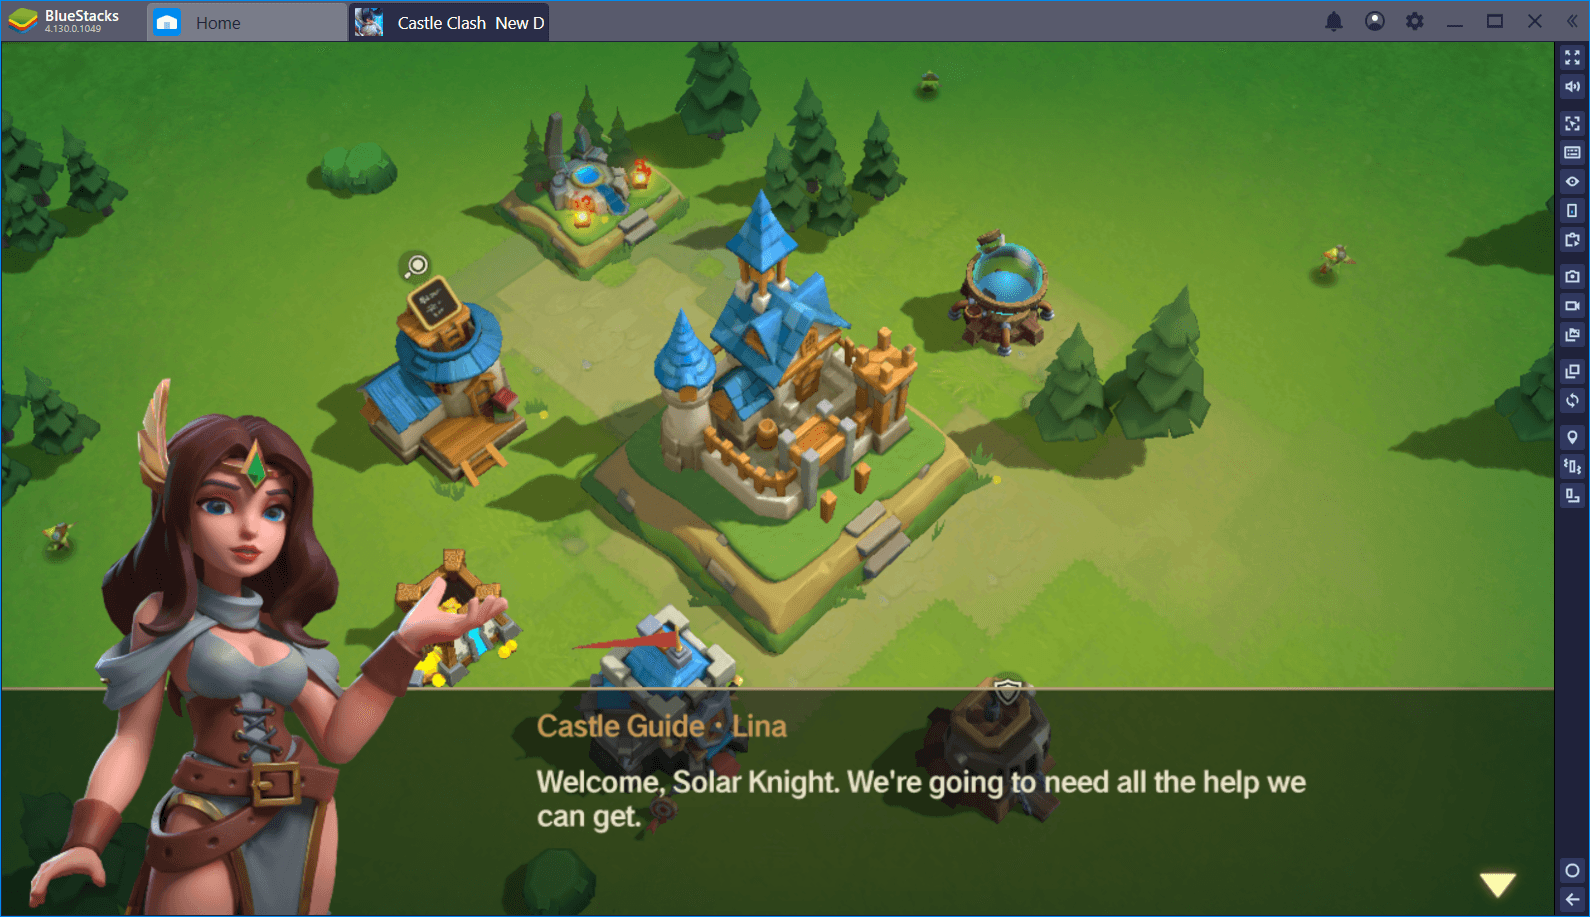 Castle Clash: New Dawn – Is It Worth the Switch?